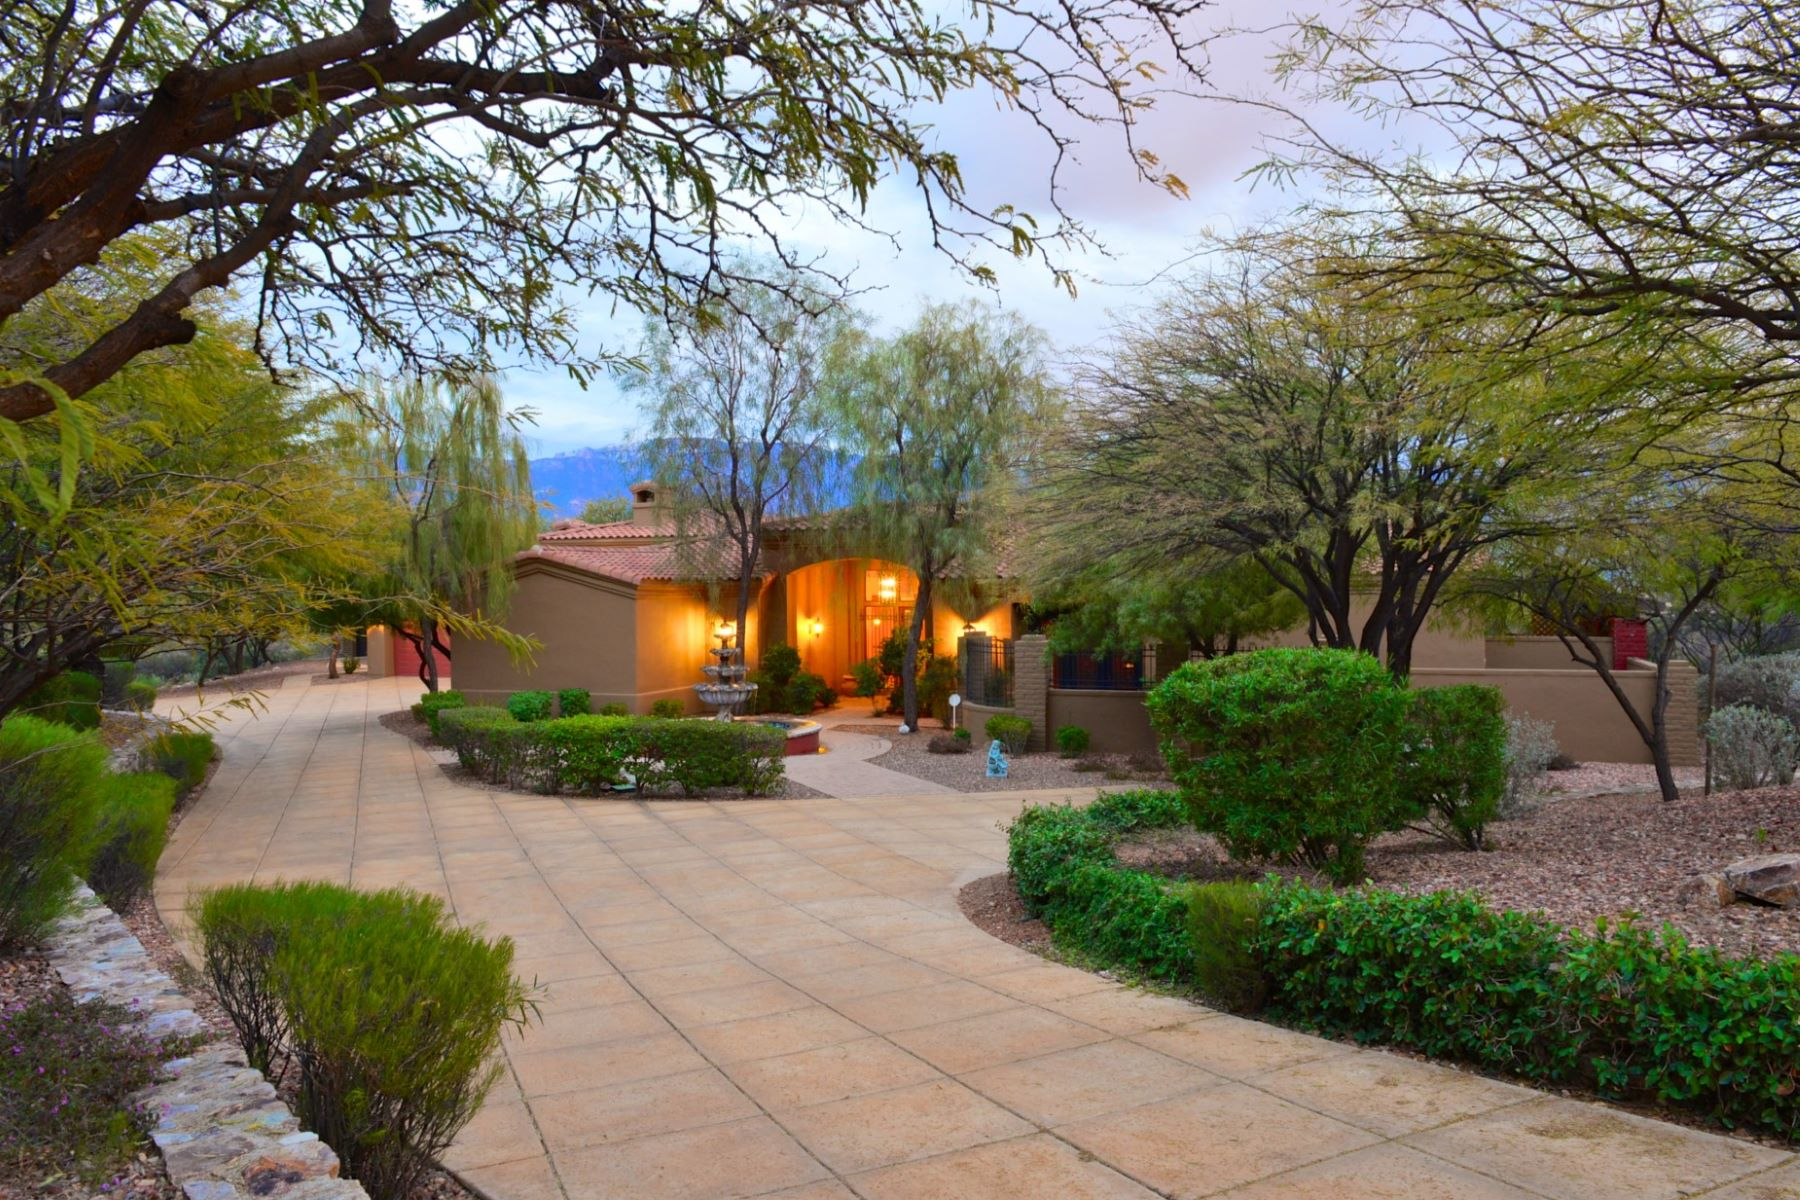 Single Family Homes for Sale at Honey Bee Ridge Estates 14564 N. Quiet Rain Drive Oro Valley, Arizona 85755 United States